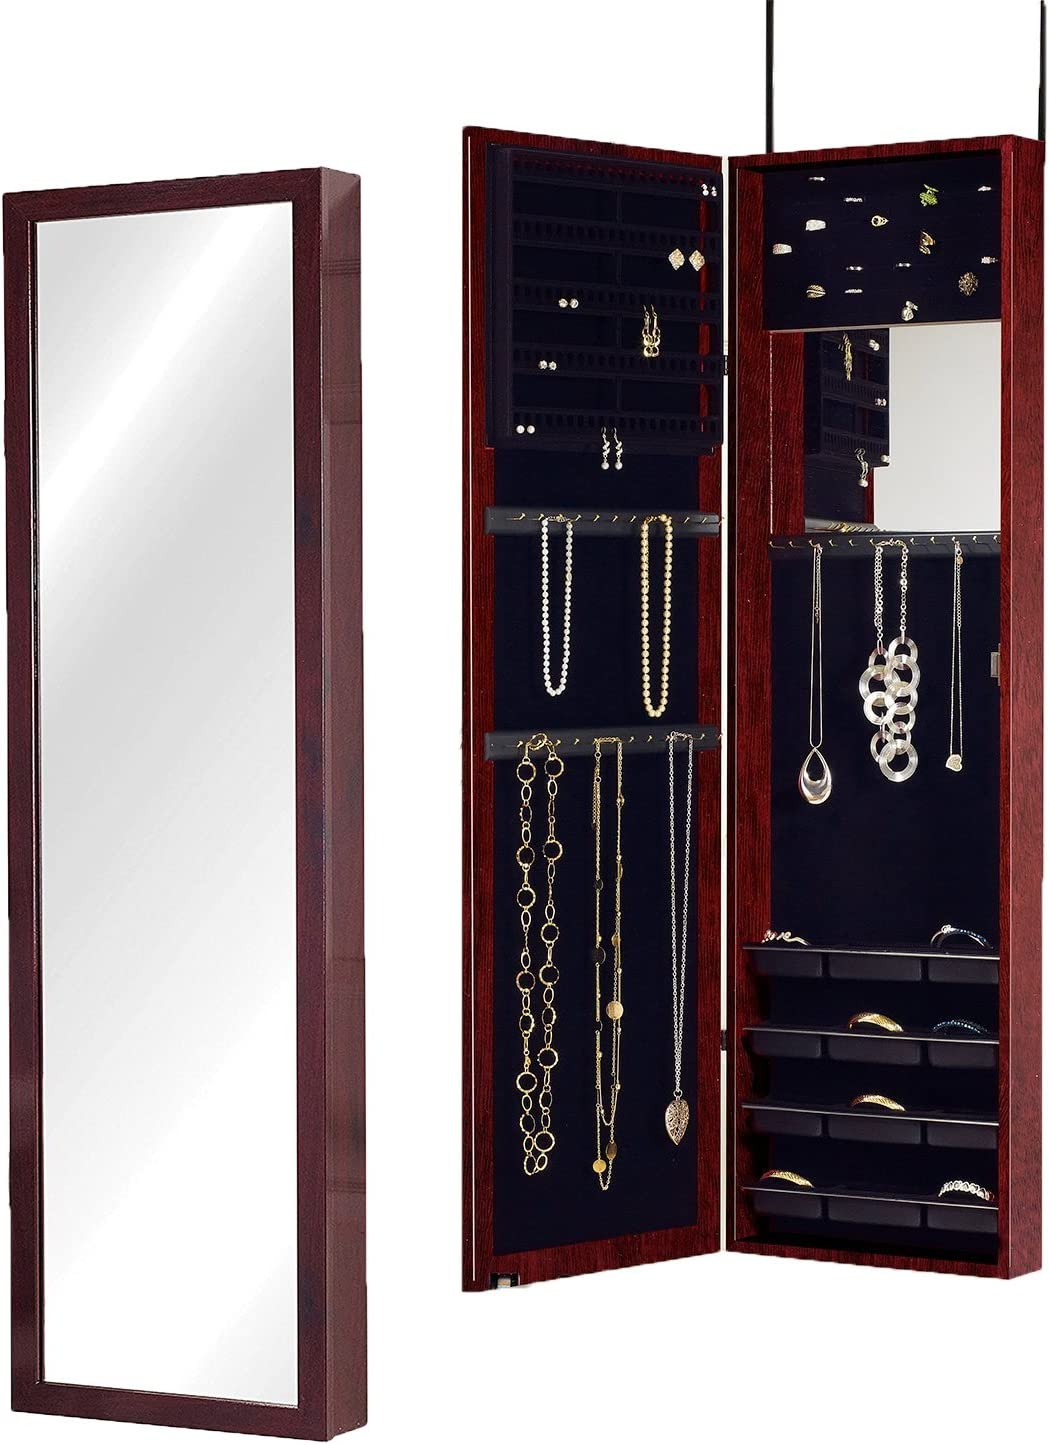 Plaza Astoria Over The Door Wall Mount Jewelry Armoire With Full Length Mirror Lined Storage Interior Vanity Mirror Cherry Home Kitchen Amazon Com